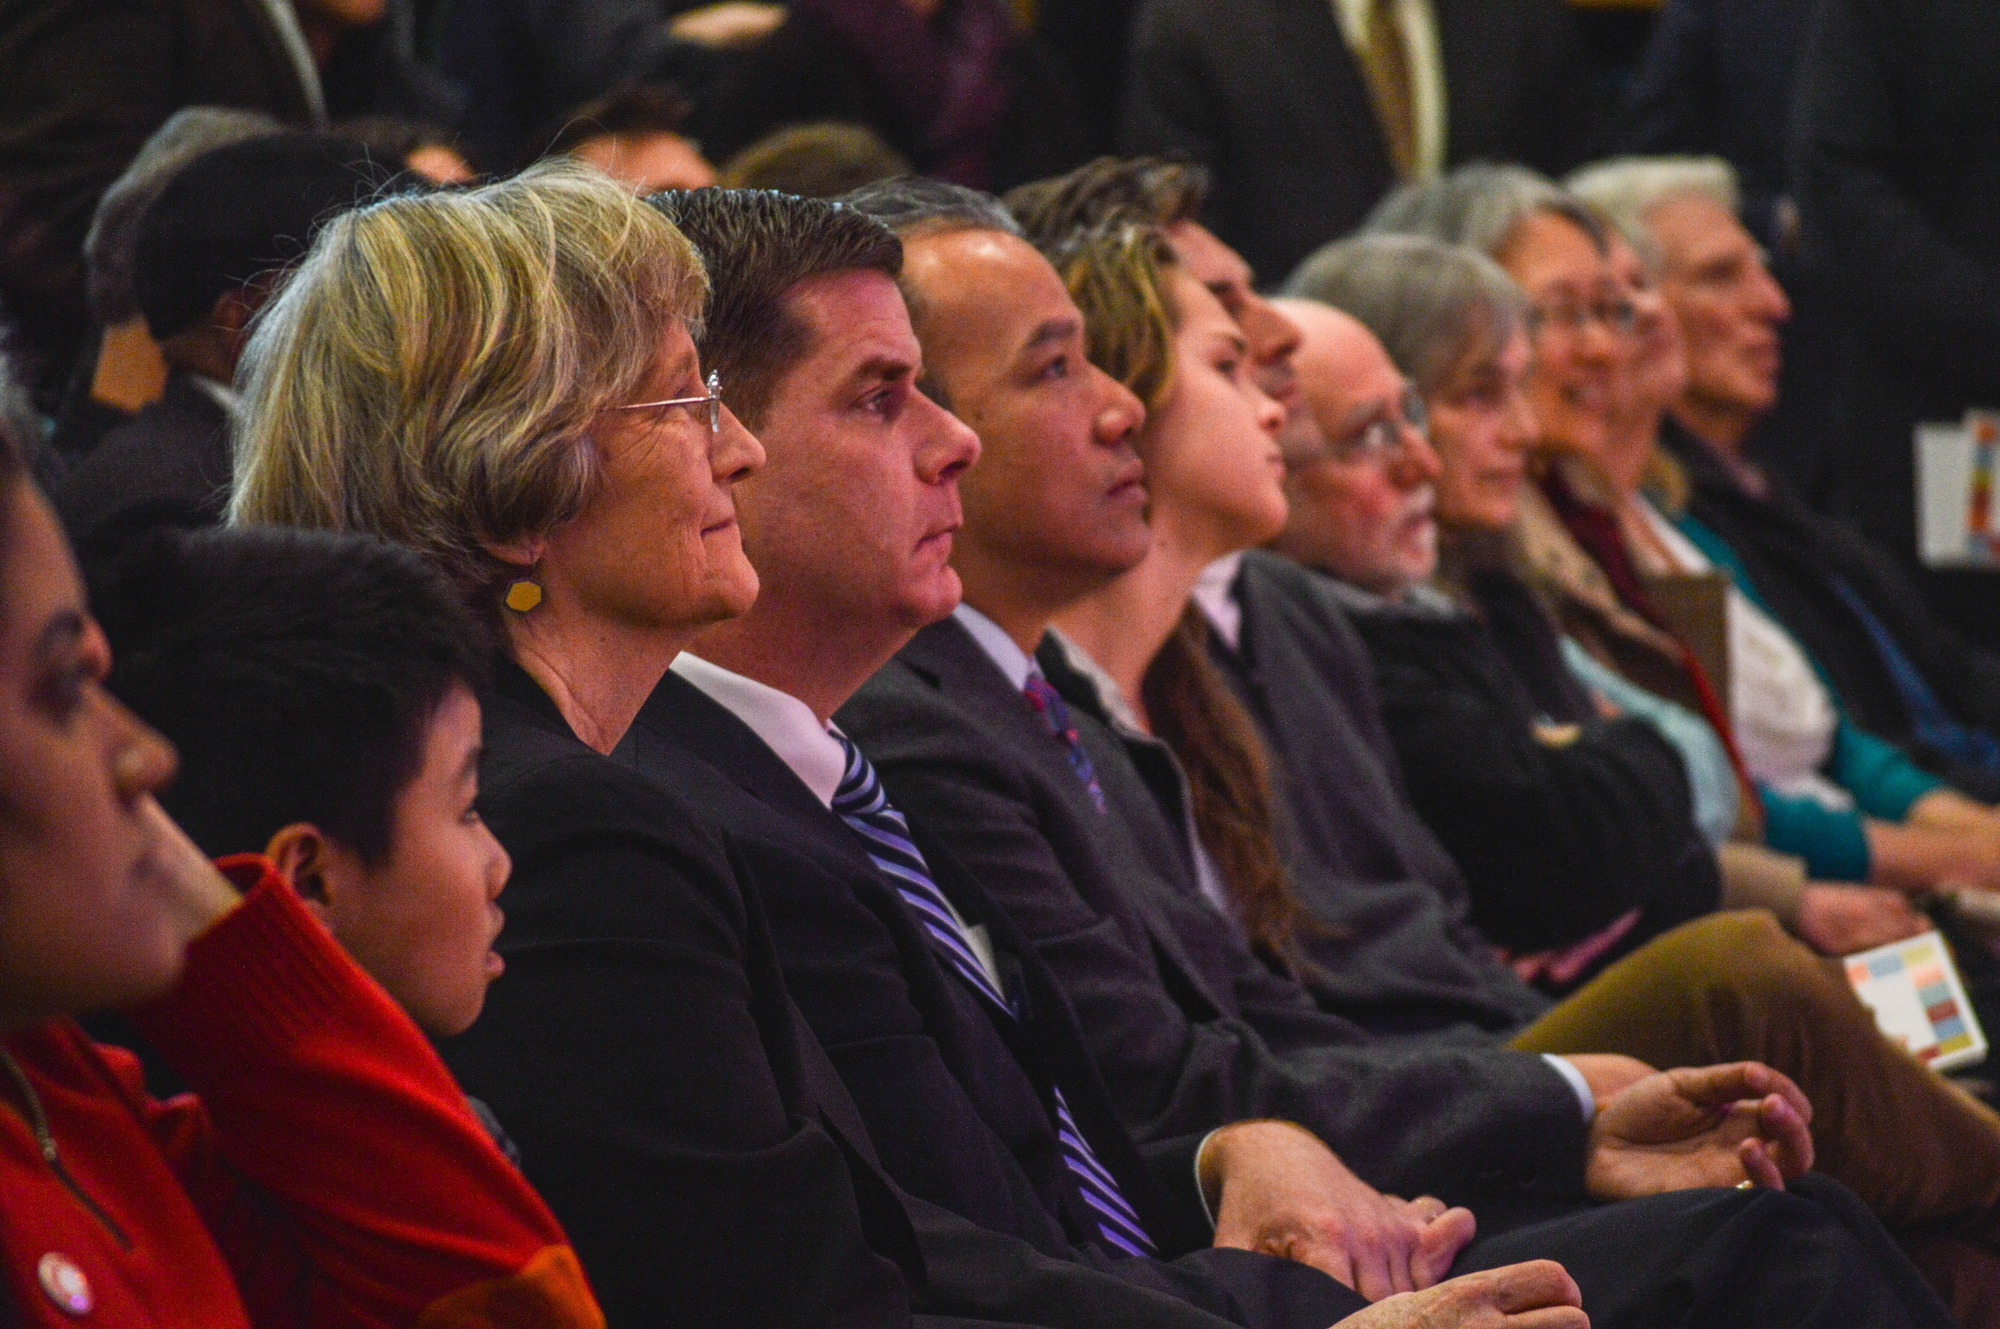 University President Drew G. Faust seated next to Boston Mayor Martin J. Walsh at the opening of the Harvard Ed Portal at its new location in Allston in February.